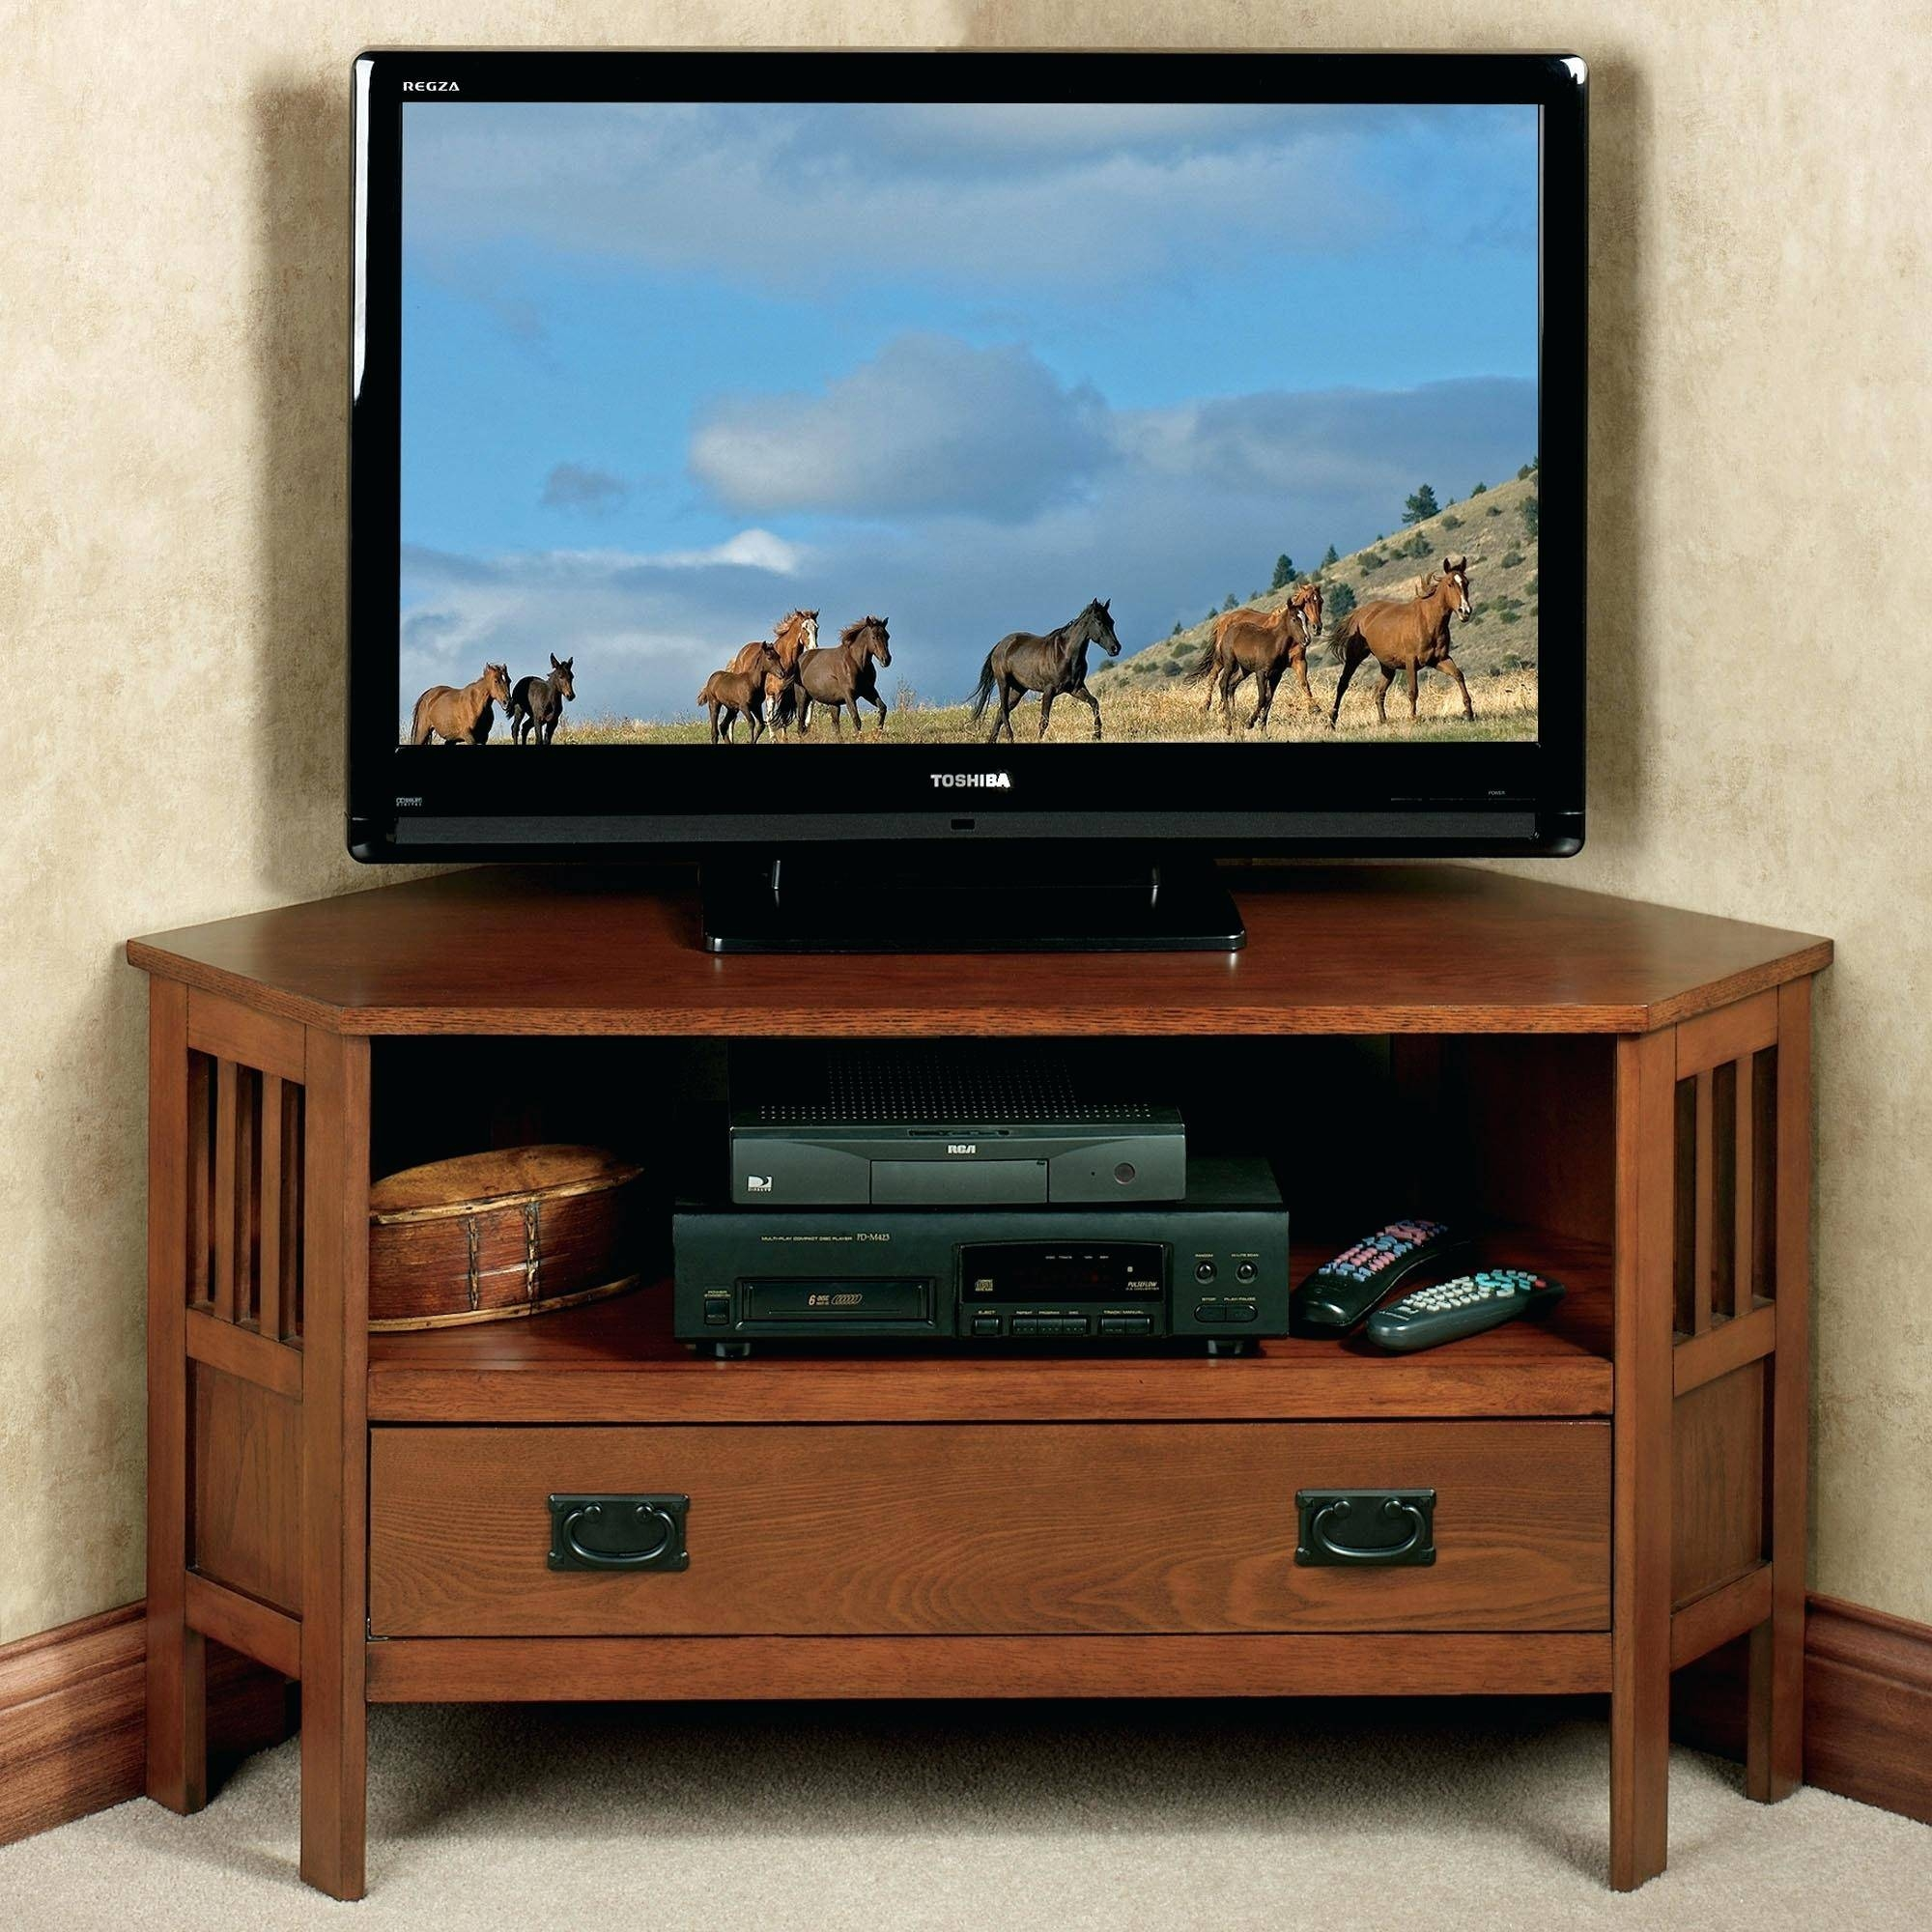 Tv Stand: Wonderful Corner Tv Stand Cabinet Design. Corner Tv within Corner Oak Tv Stands for Flat Screen (Image 15 of 15)